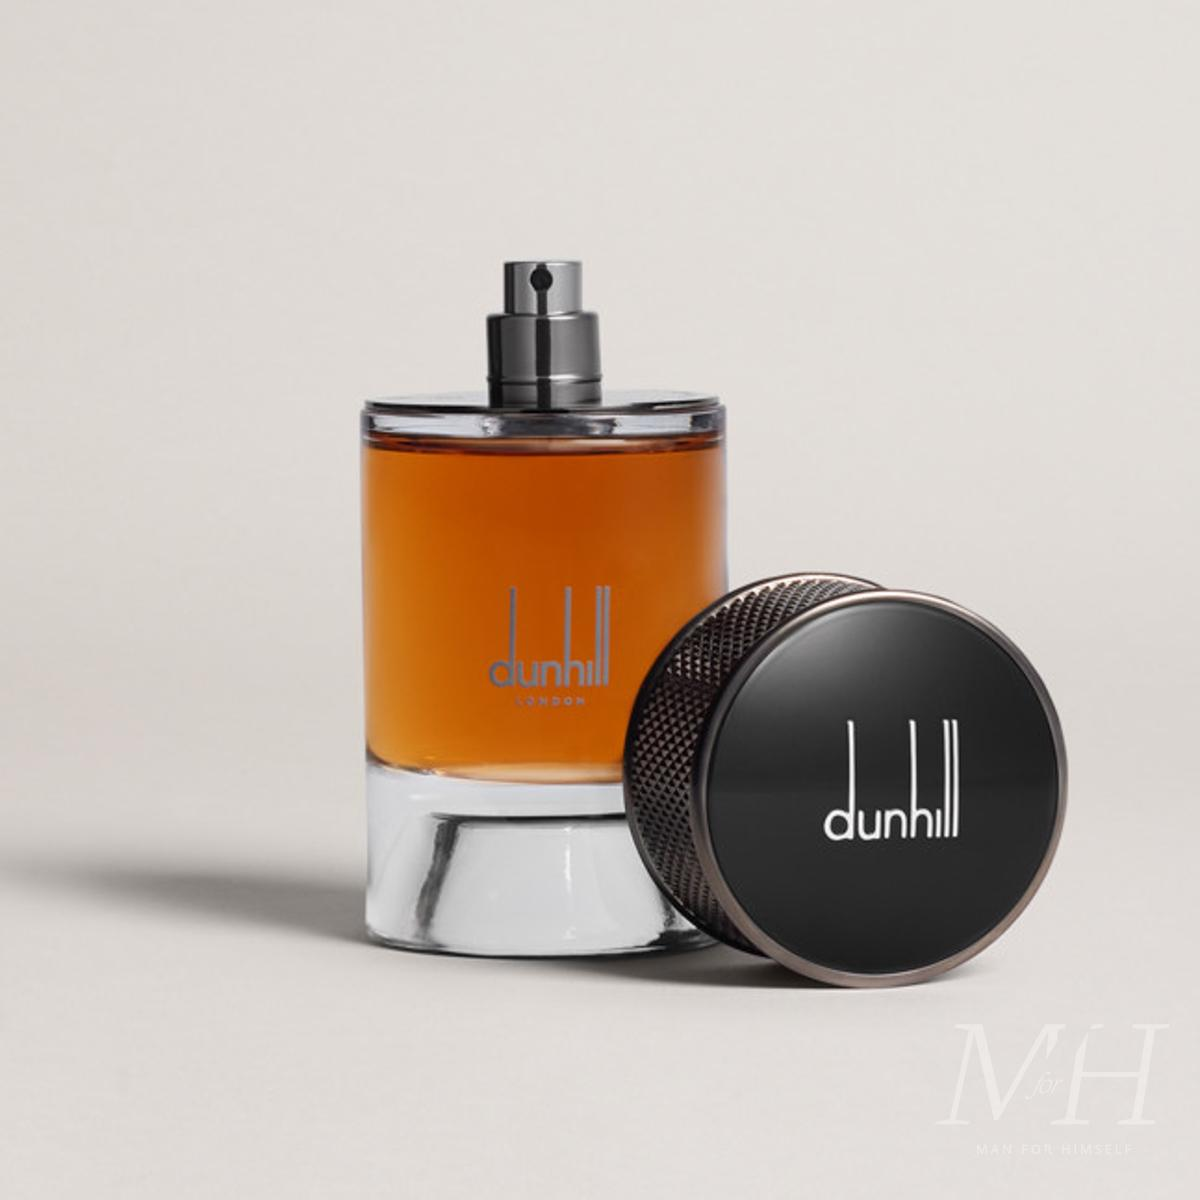 dunhill-british-leather-fragrance-man-for-himself